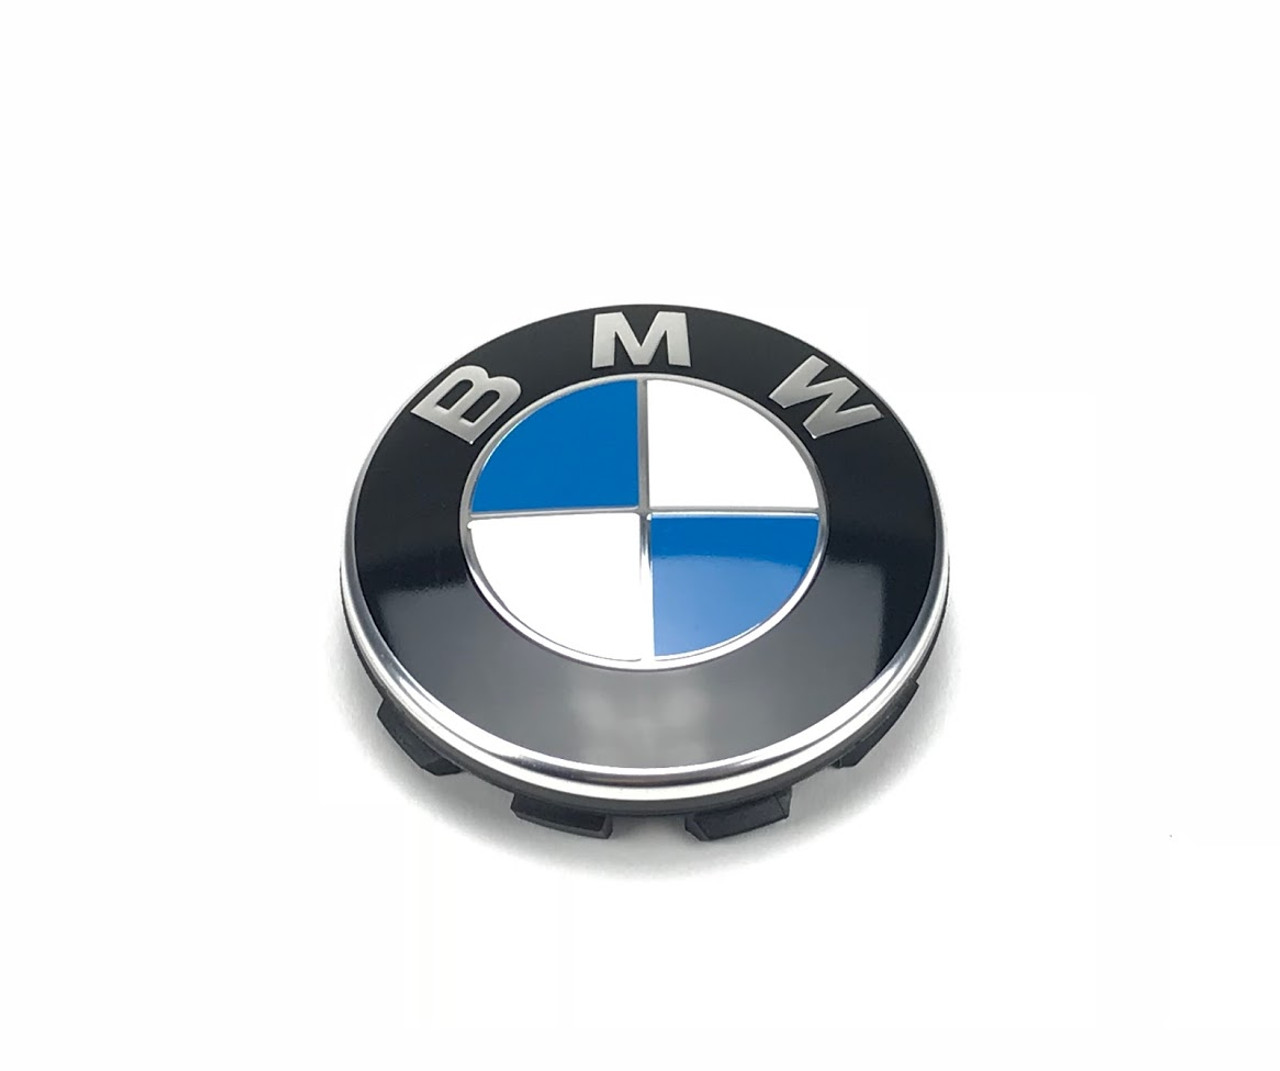 Genuine BMW Wheel Center Cap 68mm 36136783536